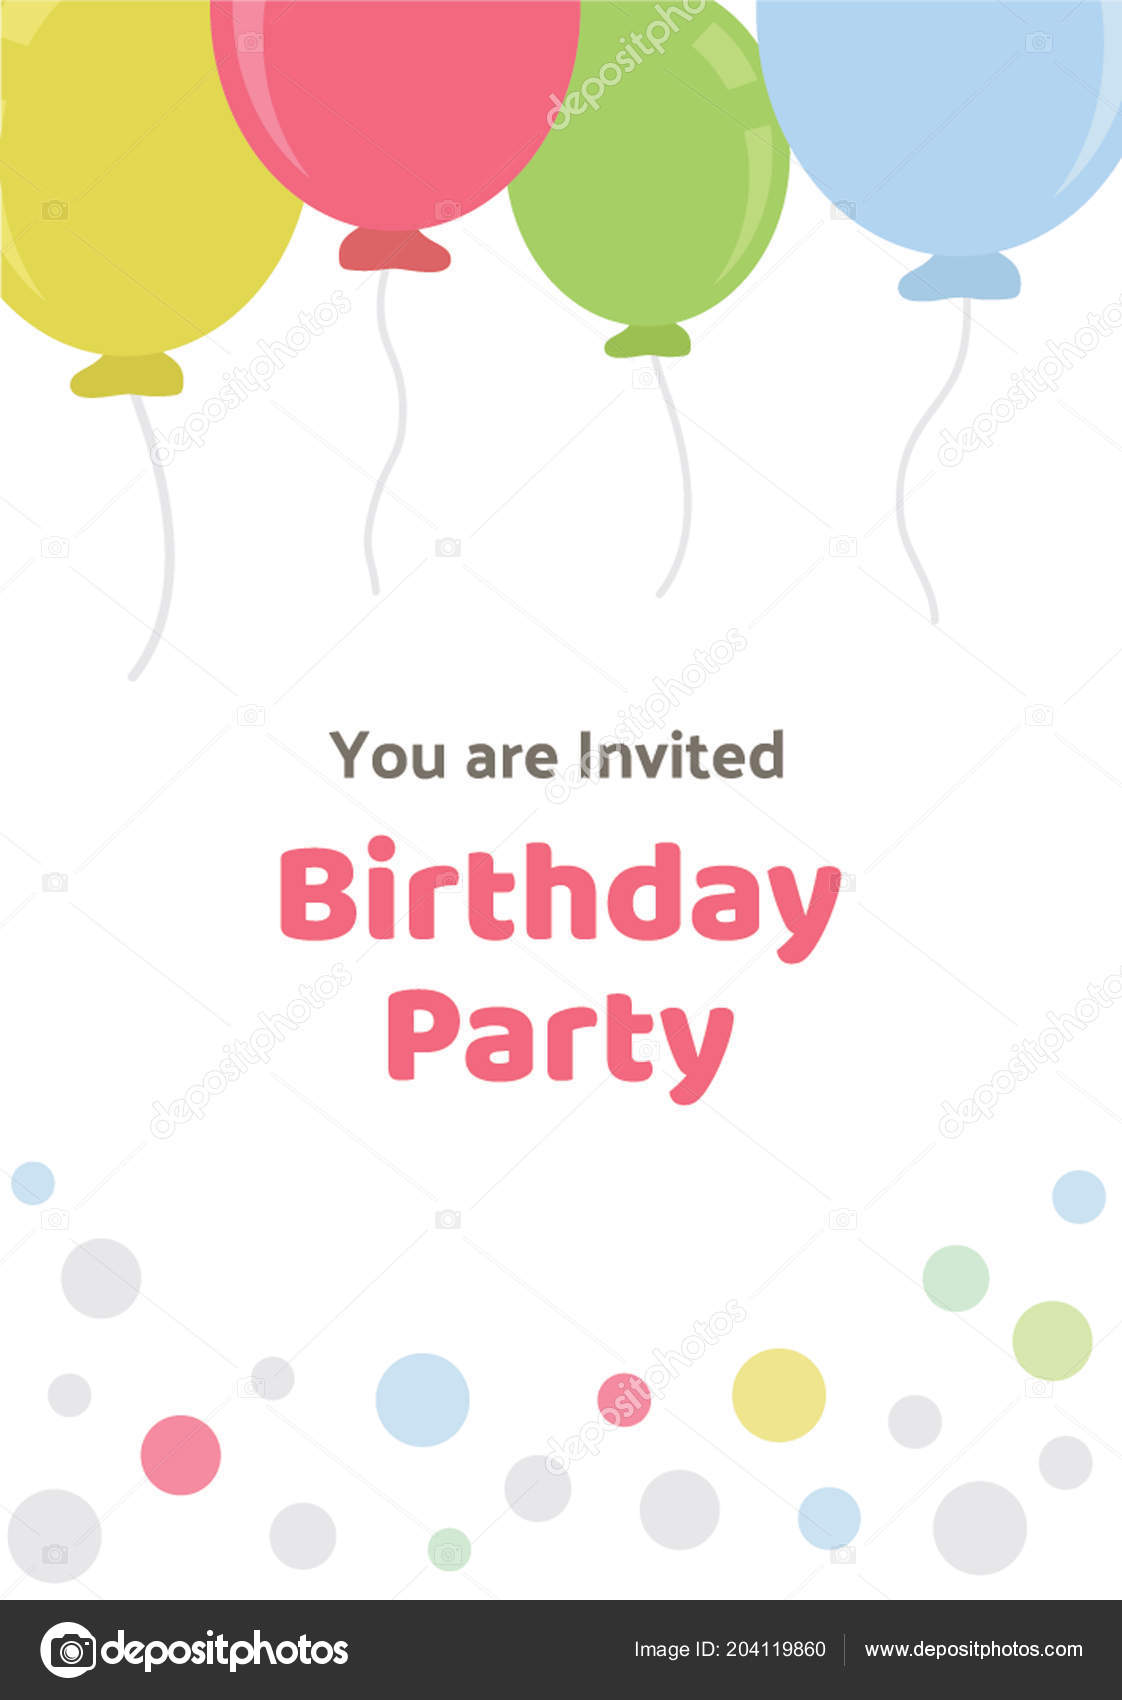 Card Balloons Bubble Design Written Text Invitation Representing ...